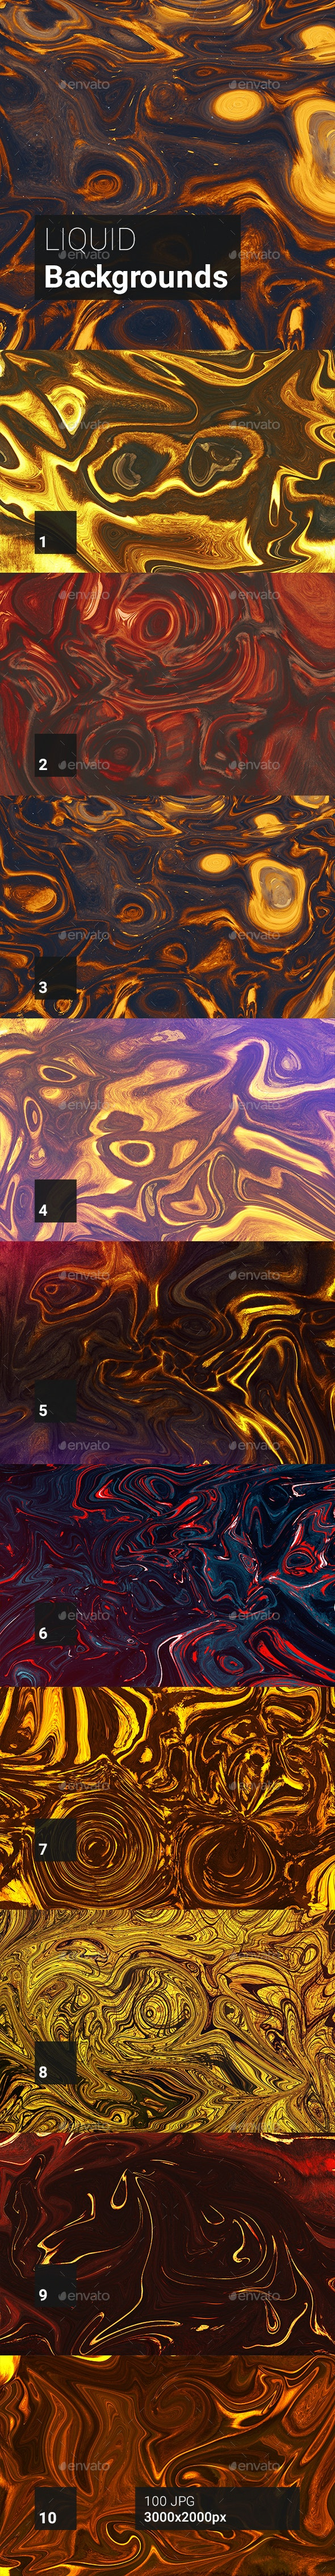 100 Liquid Backgrounds - Abstract Backgrounds